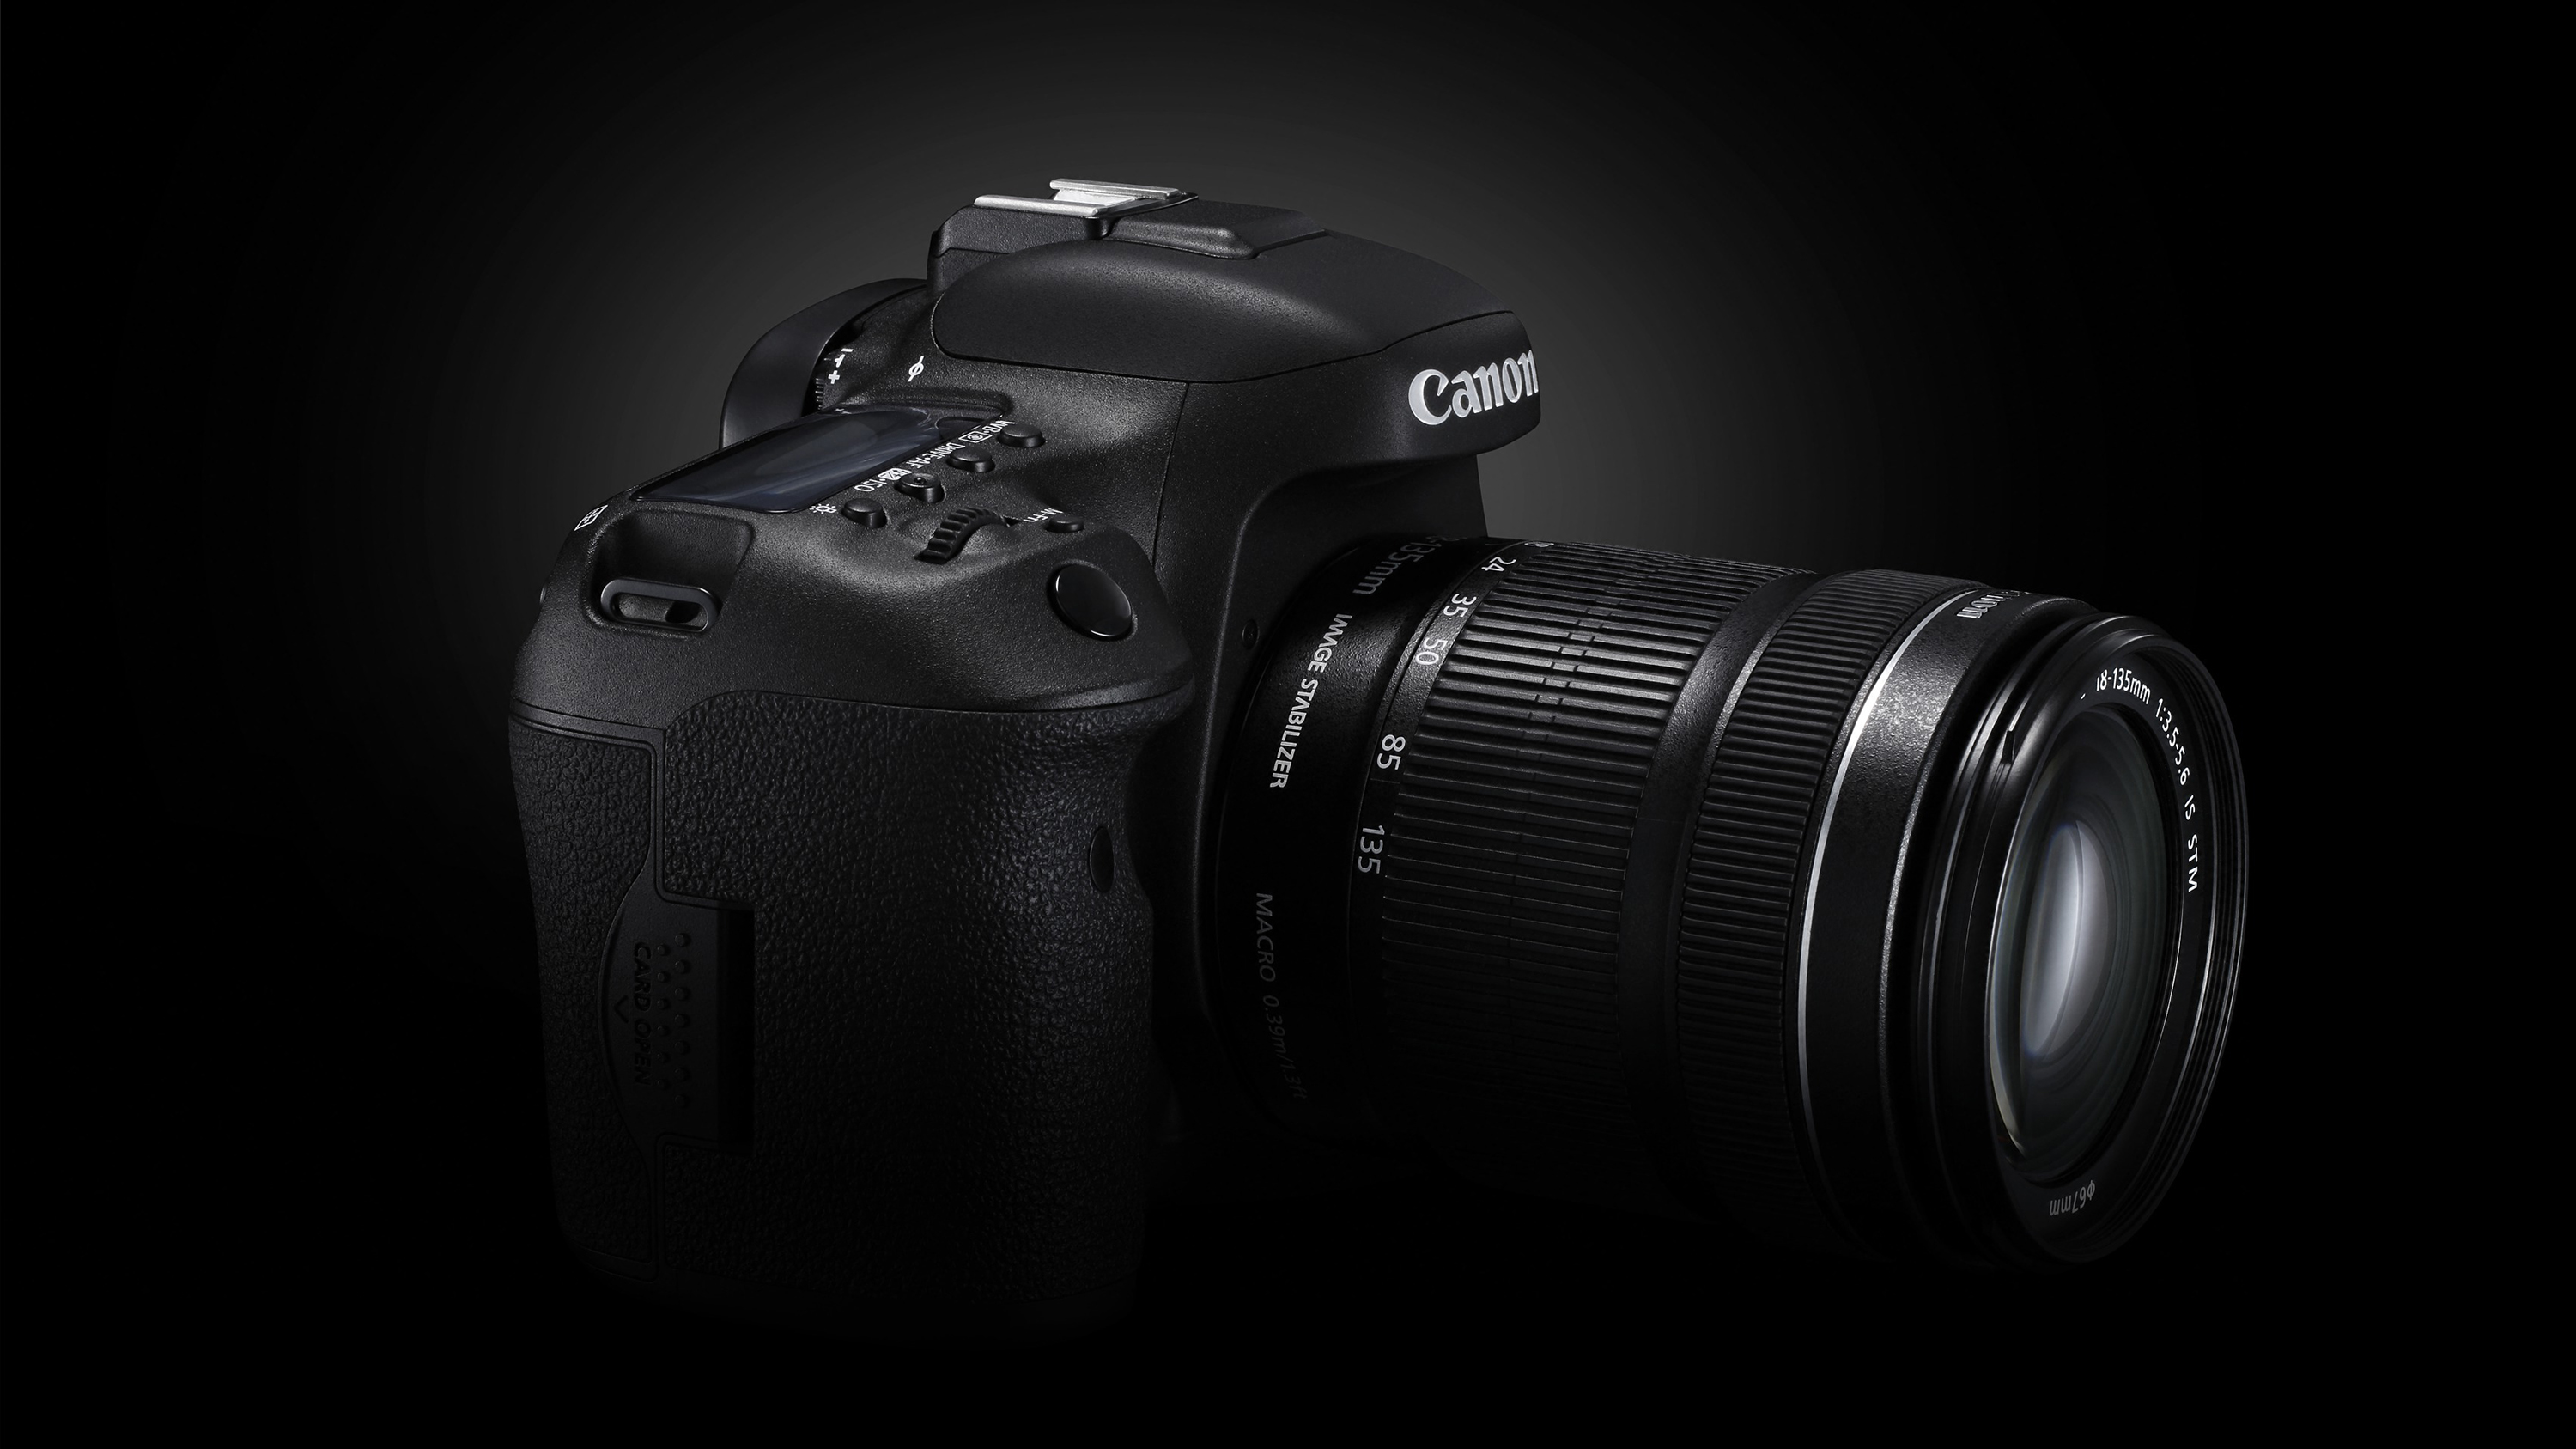 The Canon EOS 7D DSLR line has reportedly been scrapped